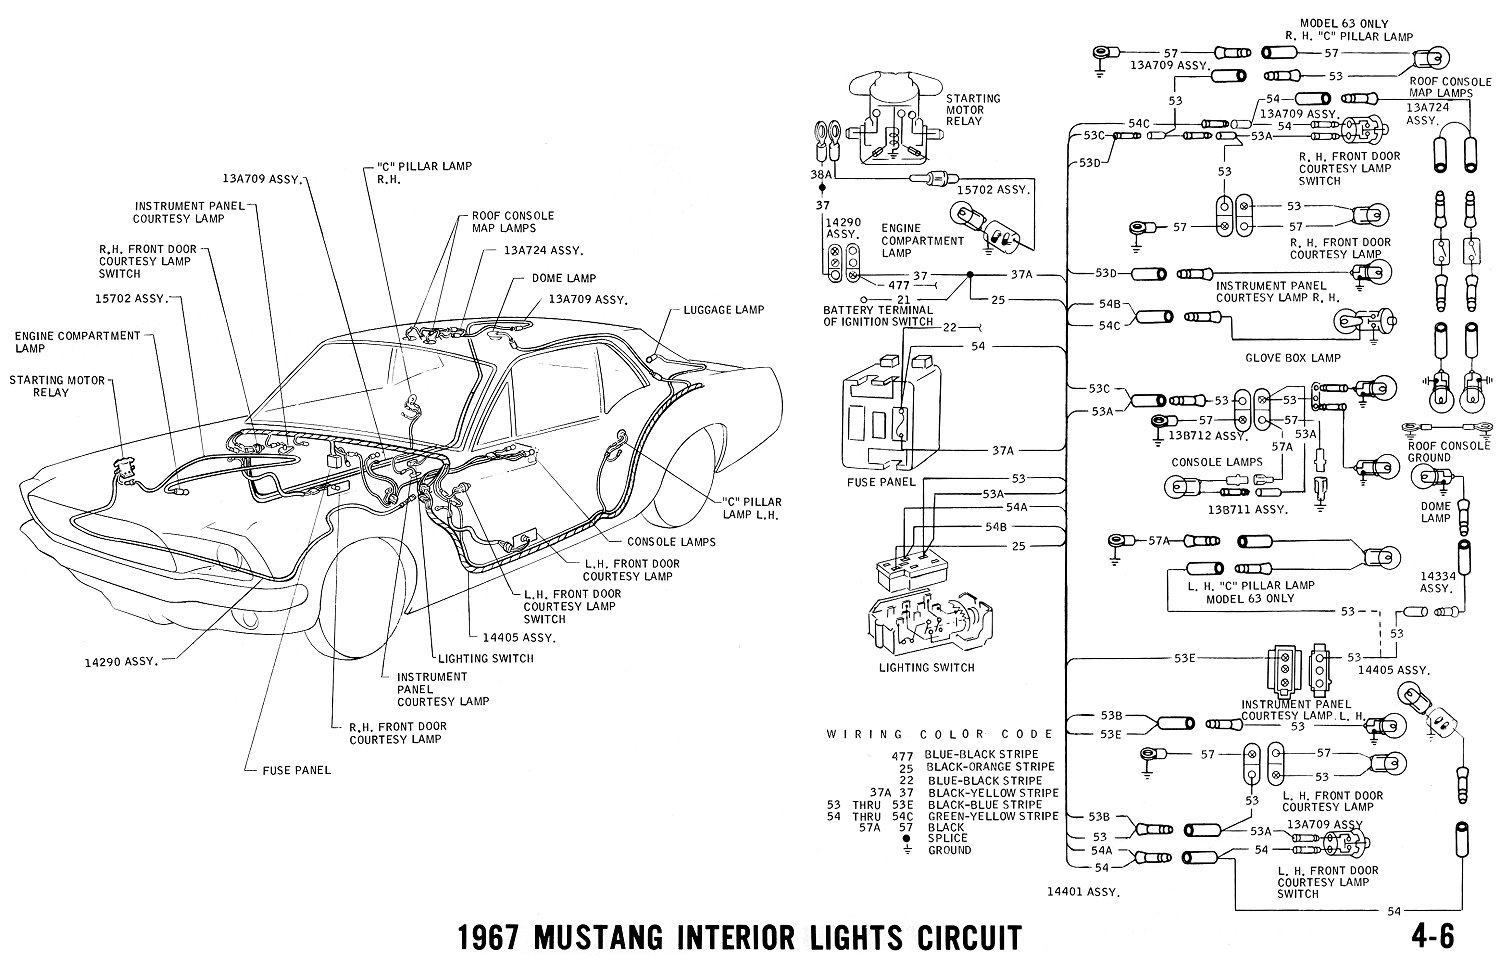 1967 Mustang Wiper Wiring Diagram Free For You Gtx Detailed Rh 9 2 Gastspiel Gerhartz De Alternator